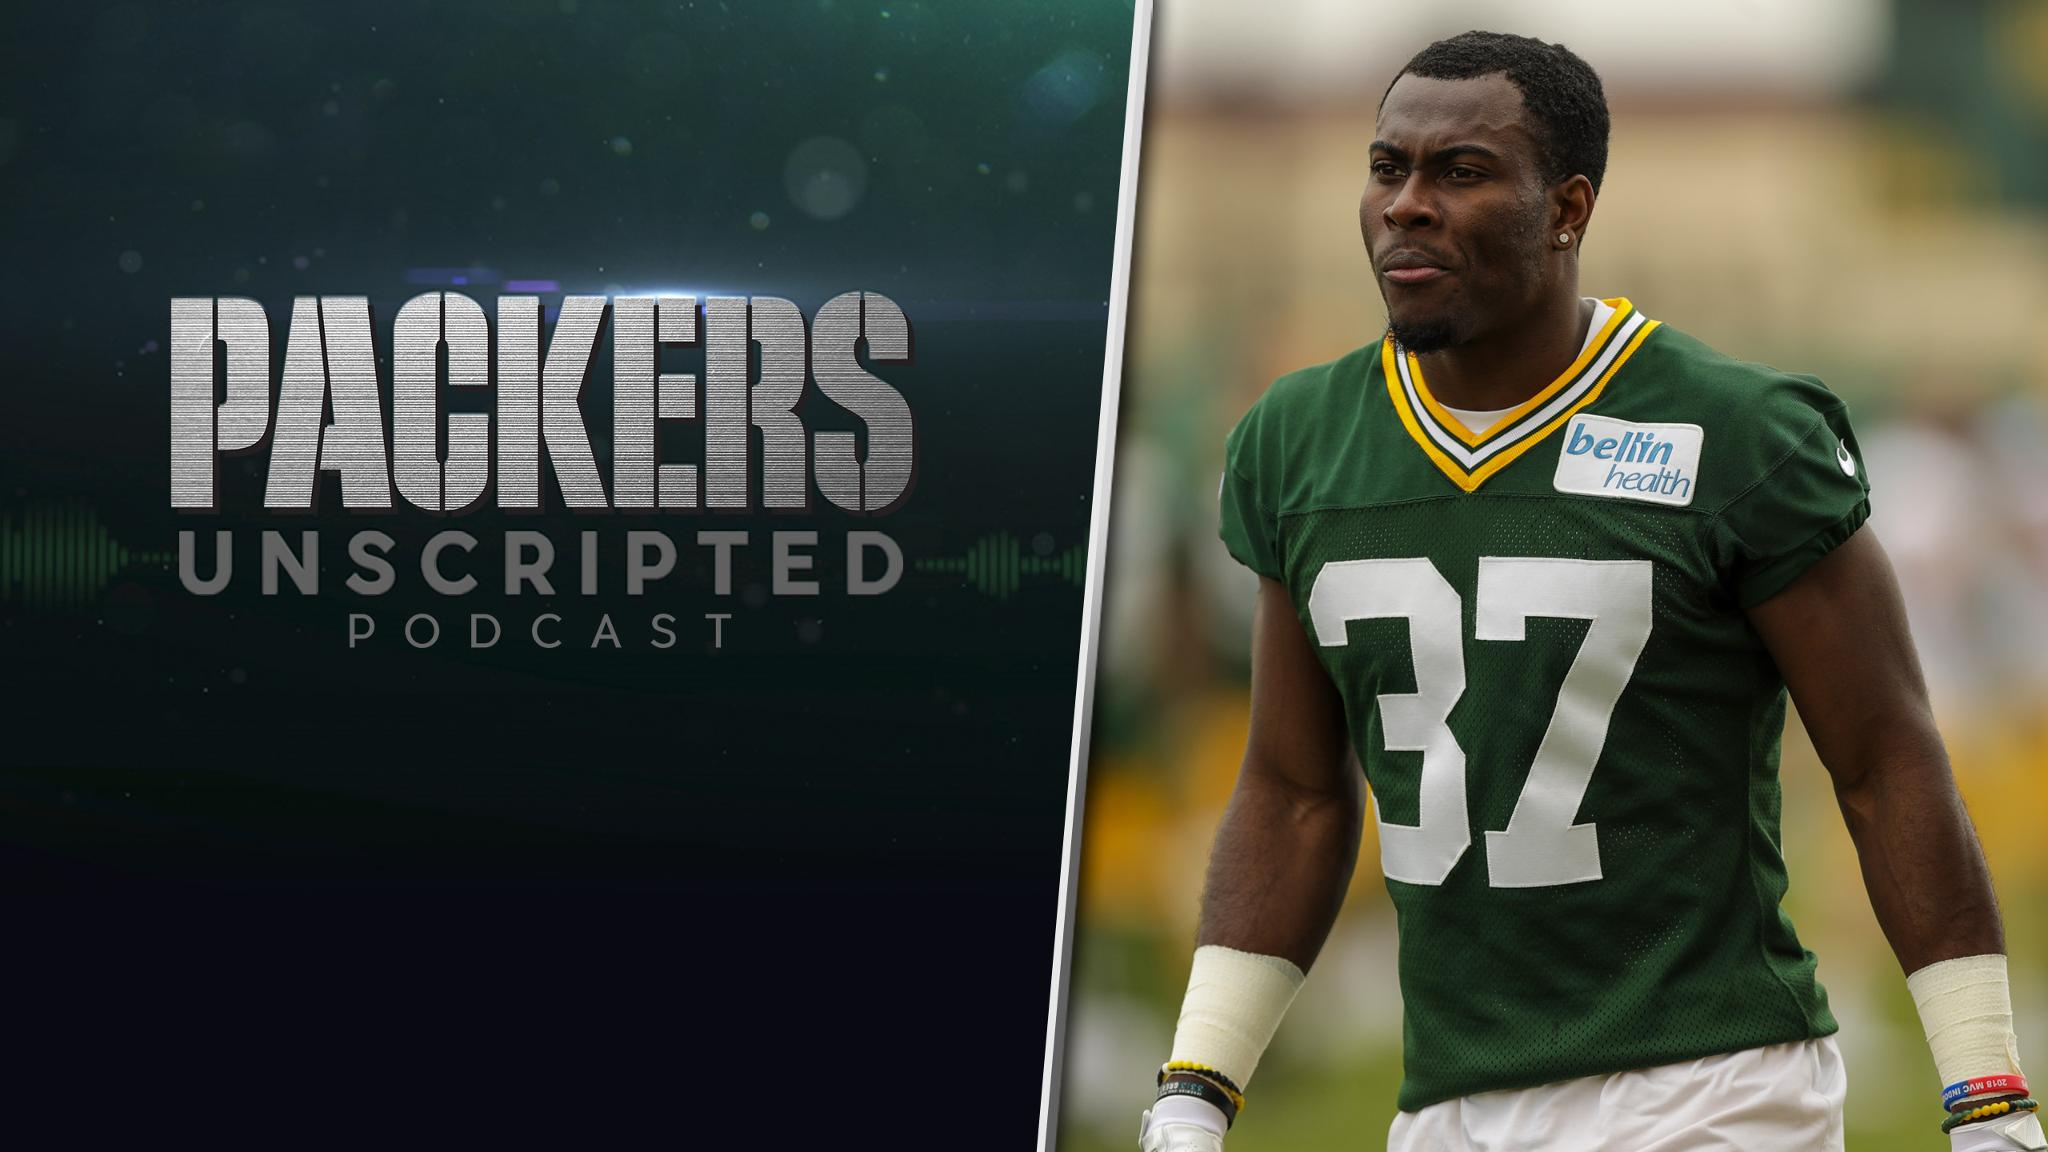 Looking ahead to #PackersCamp competition.   #PackersUnscripted ��: https://t.co/7c1BqCpYBT https://t.co/zDjvgObiV8